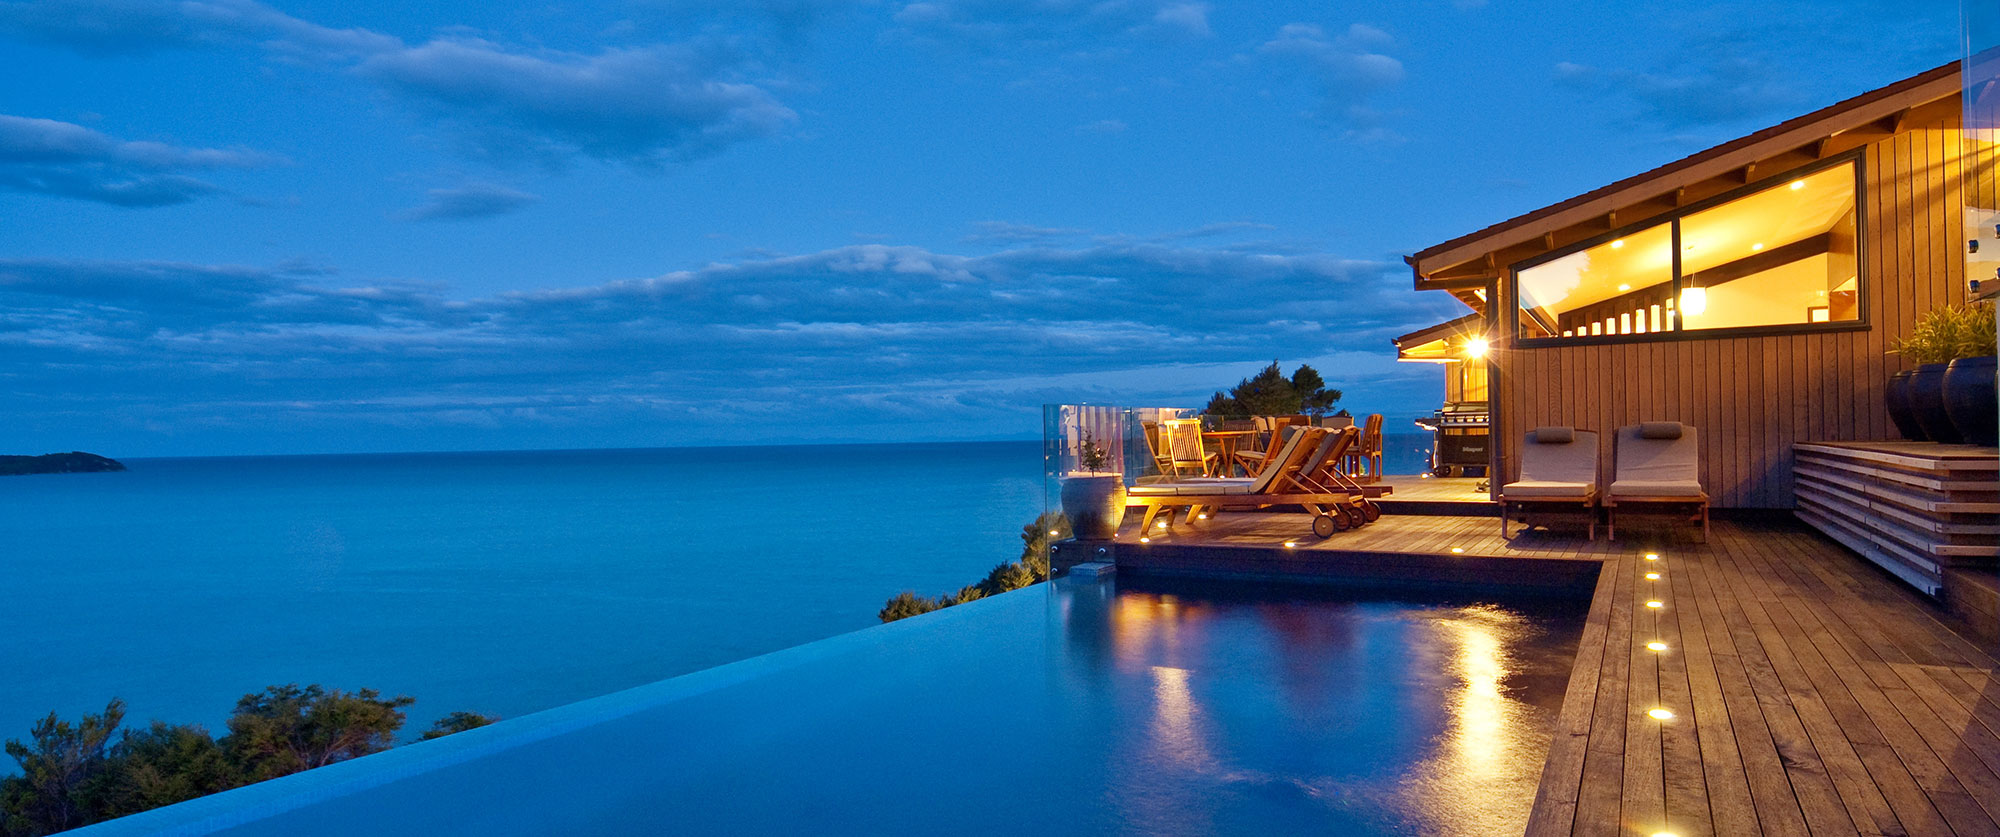 New Zealand Romantic Luxury Vacation - Split Apple Retreat, Luxury Resort in Nelson Abel Tasman